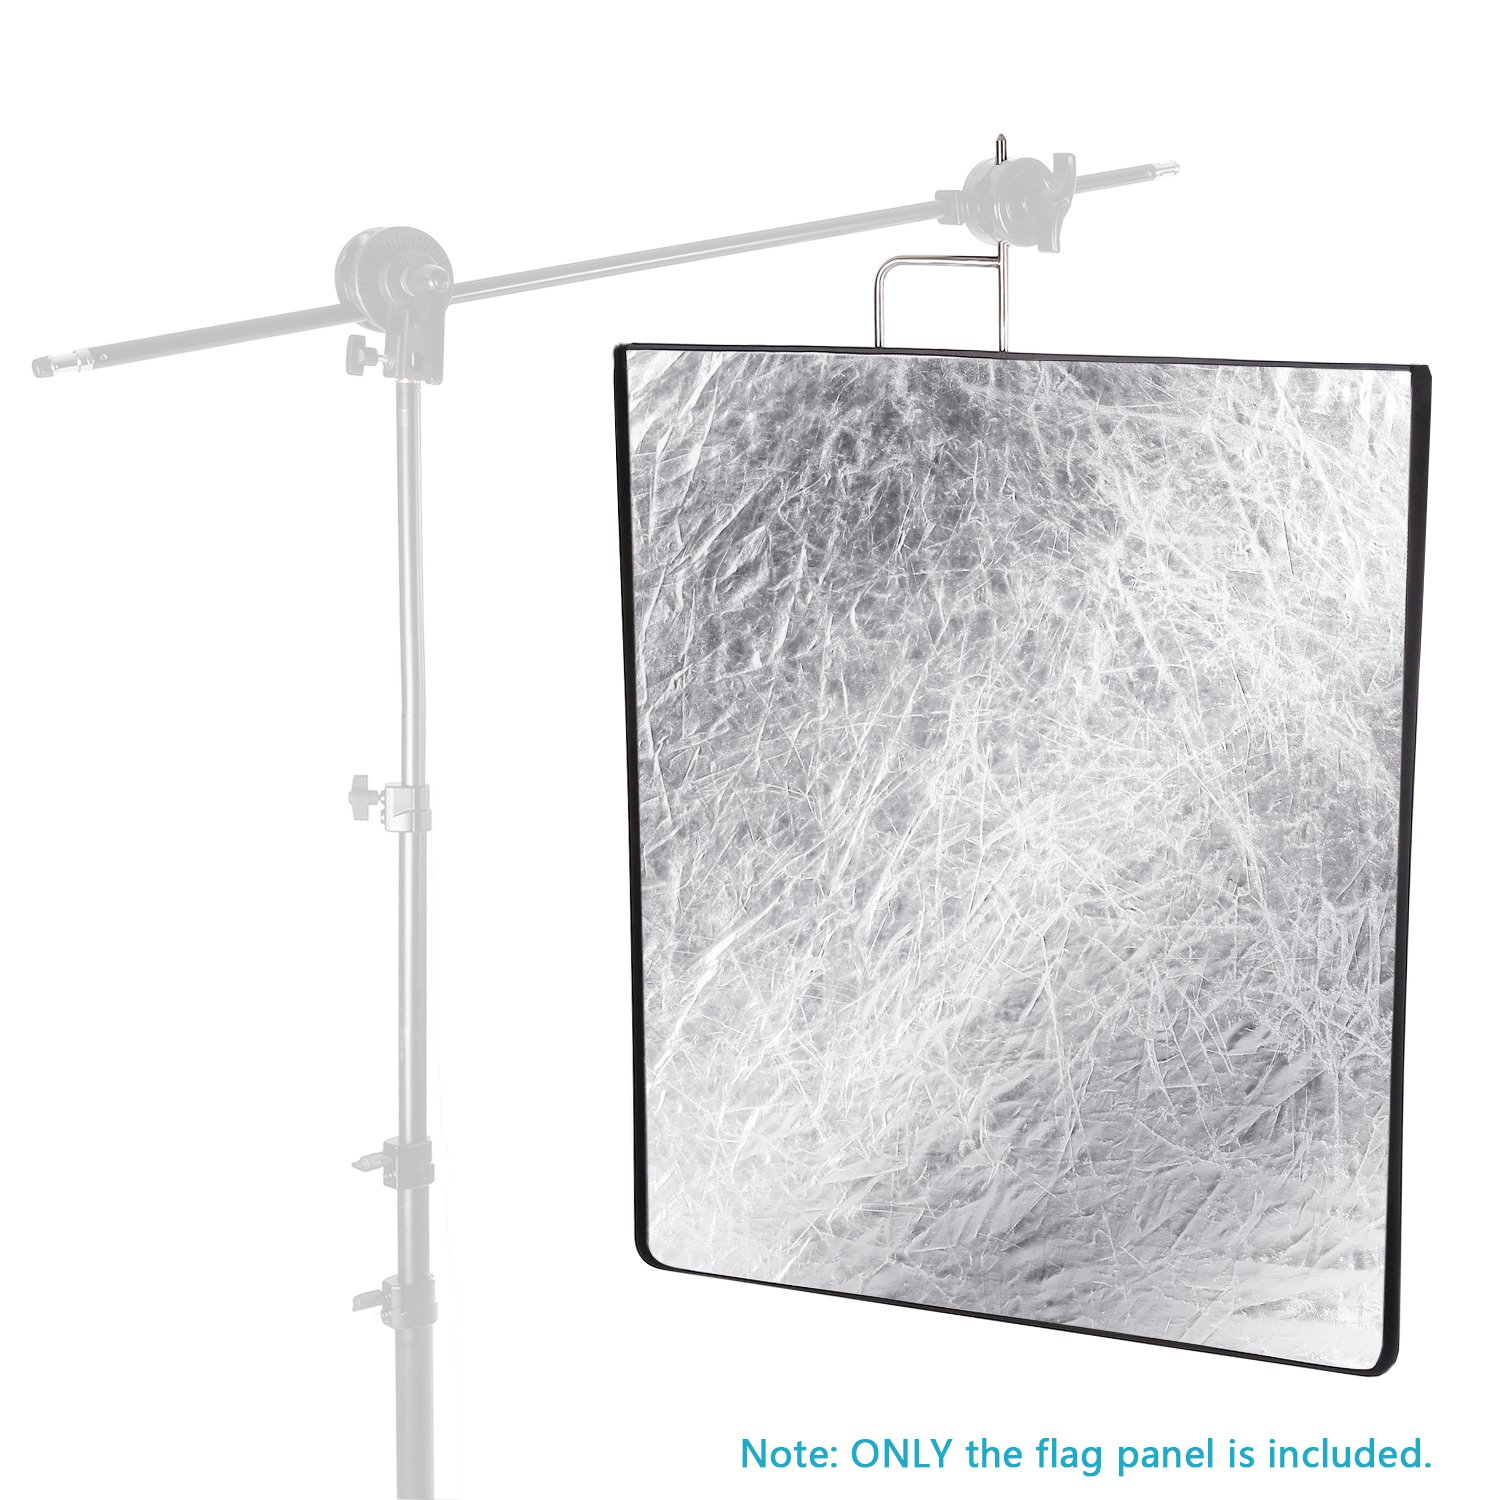 Neewer 30x36 inches 4-in-1 Metal Flag Panel Set Reflector with Soft White, Black, Silver and Gold Cover Cloth for Photo Video Studio Photography by Neewer (Image #6)